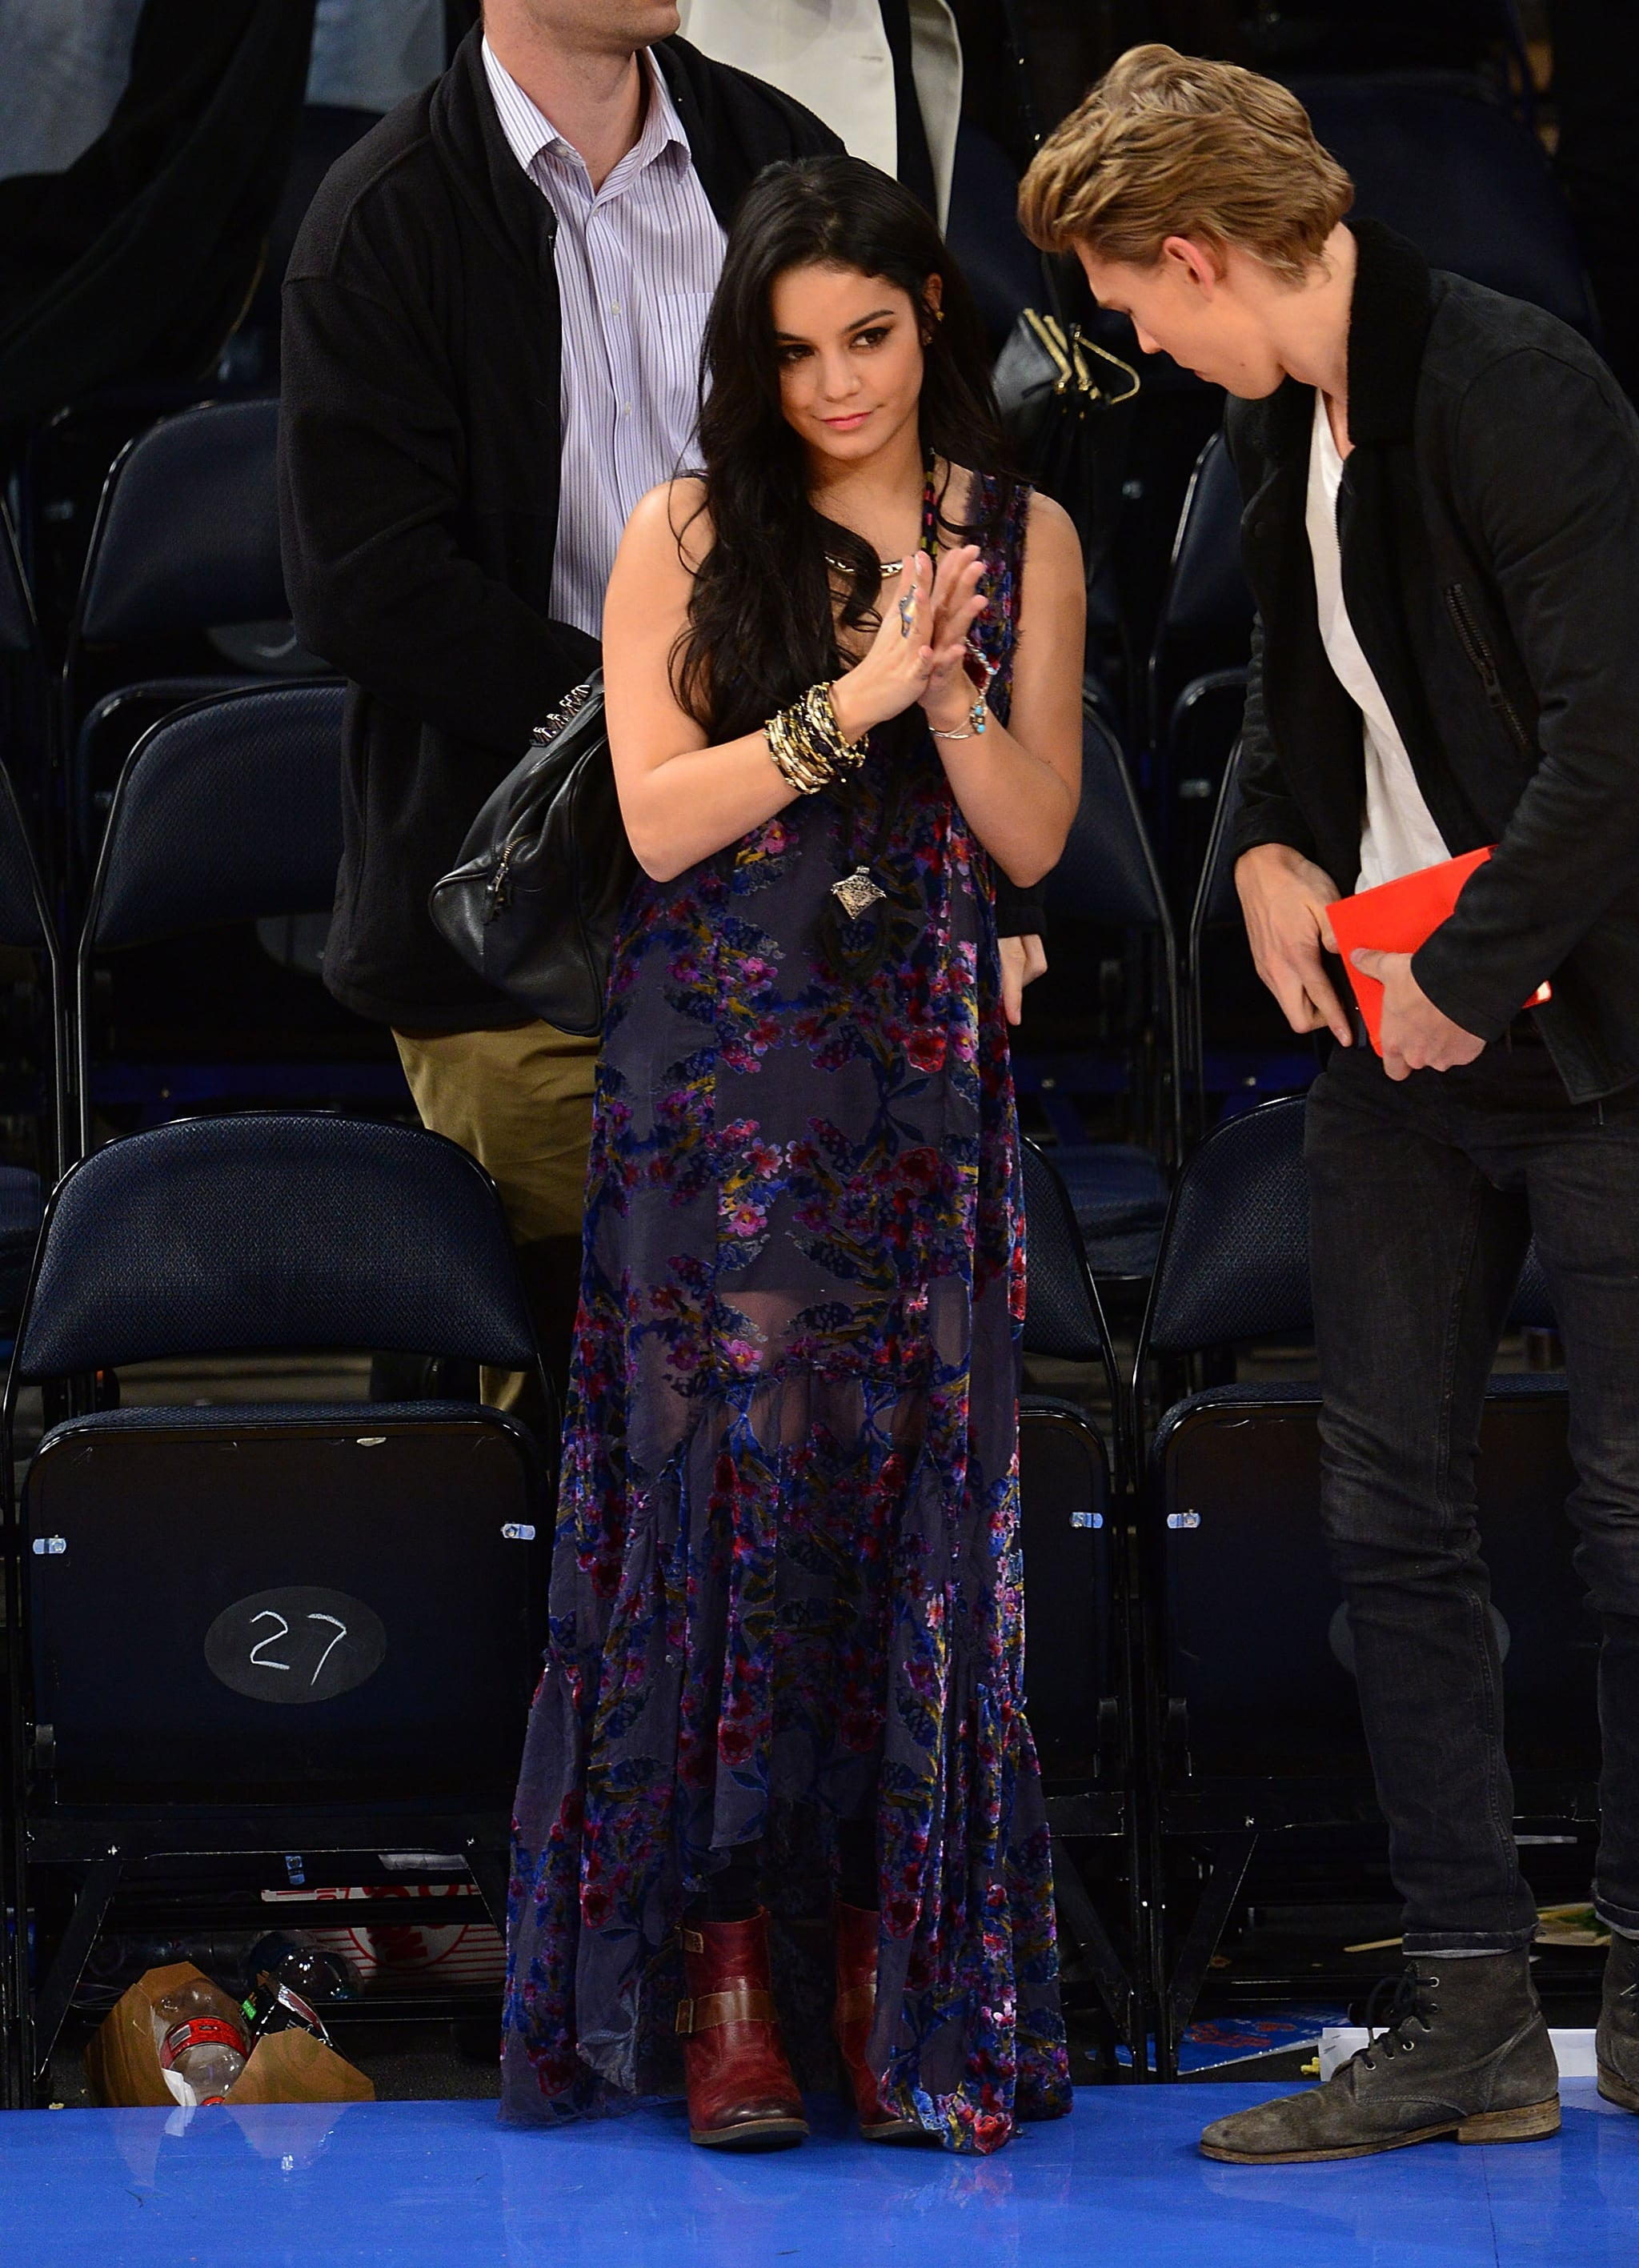 Vanessa Hudgens showcased a hippie-chic look while checking out a Knicks game in November 2012.